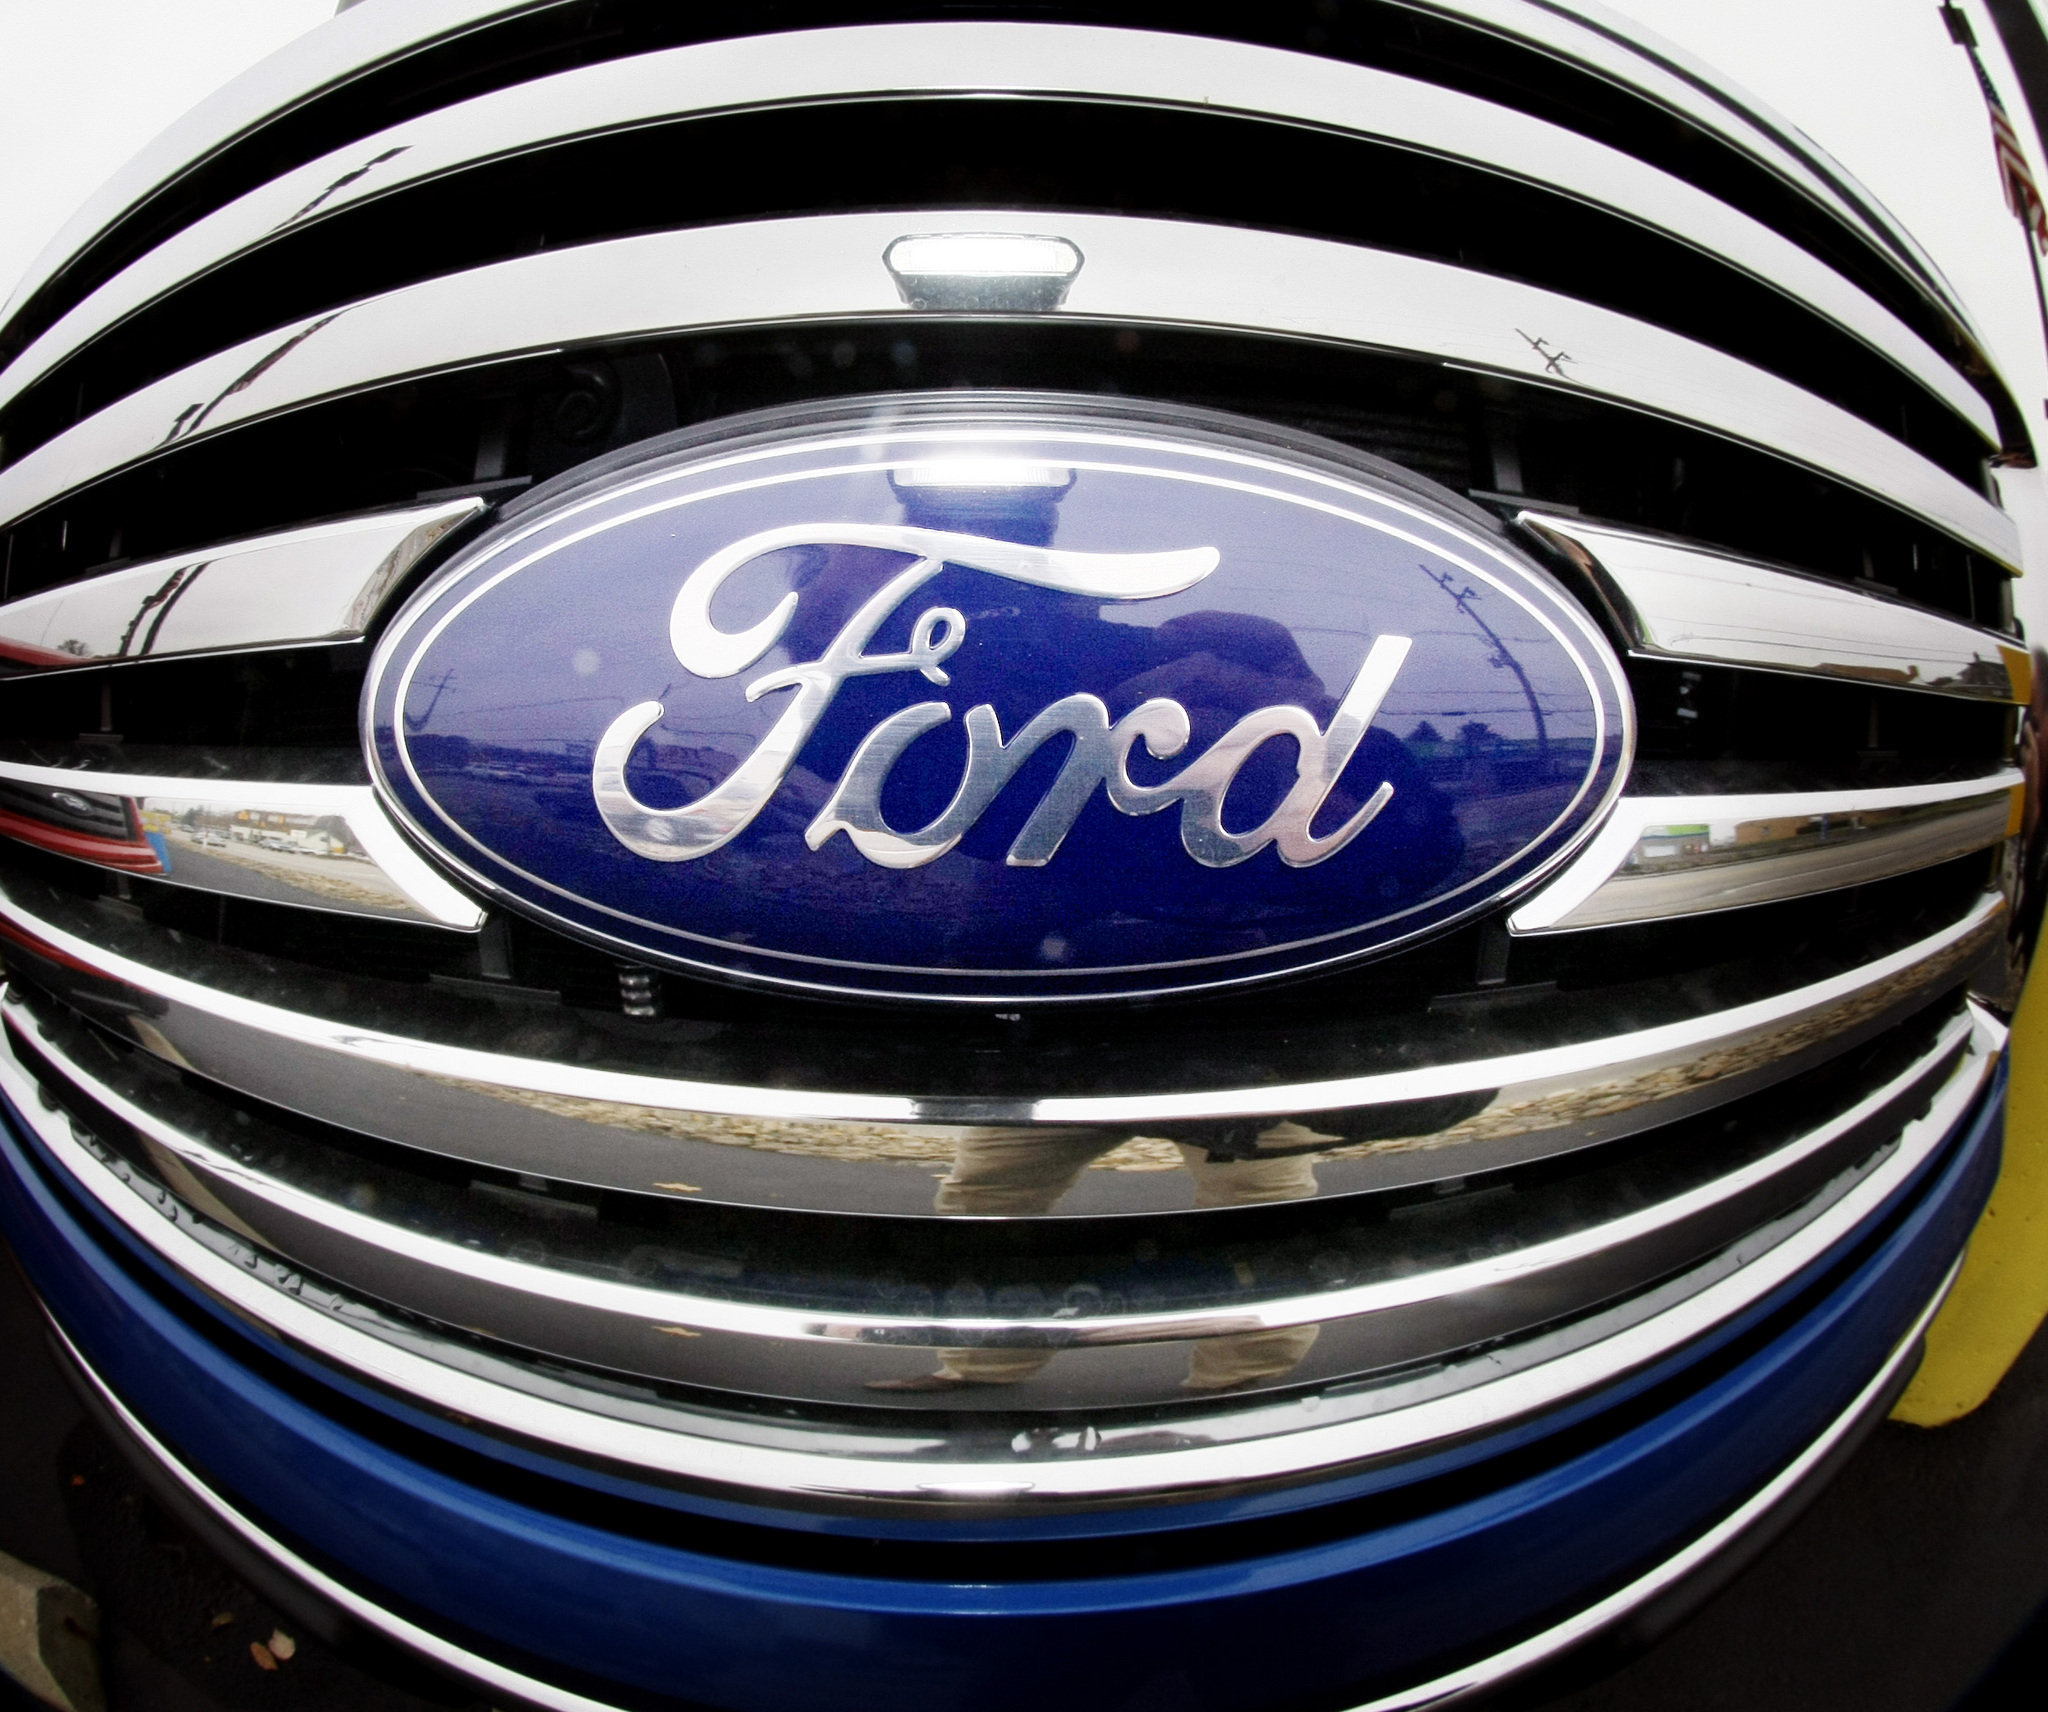 Ford Logo Ford Car Symbol Meaning And History Car Brand Names